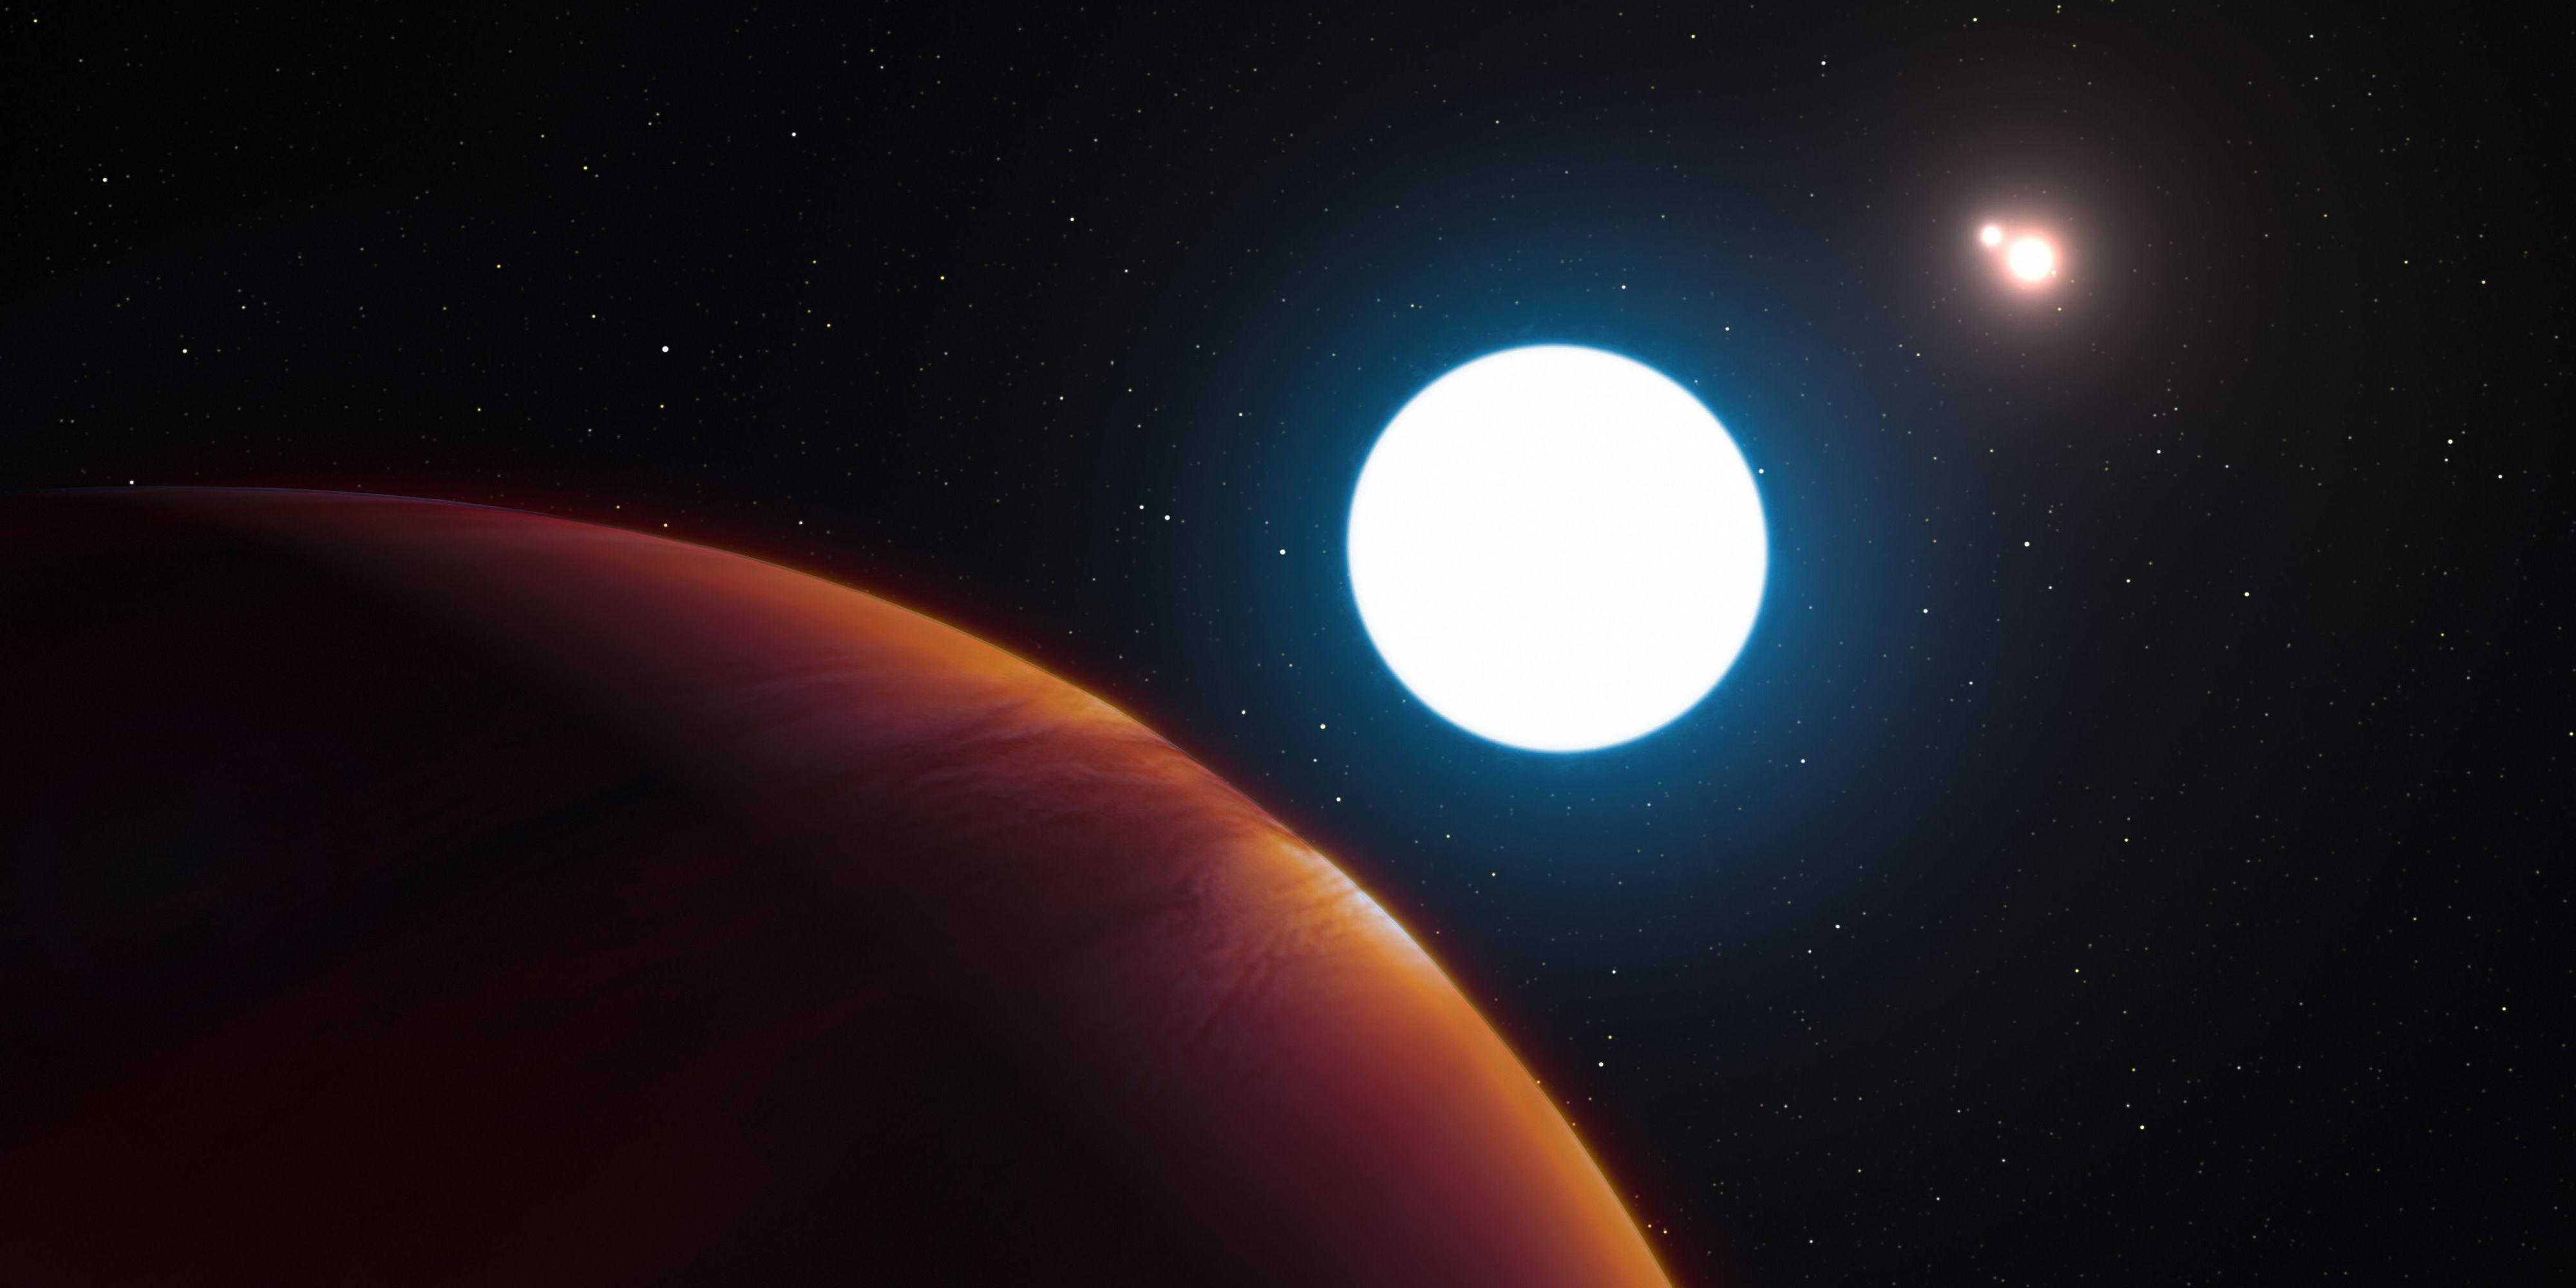 new planet discovered 2019 - HD2560×1440